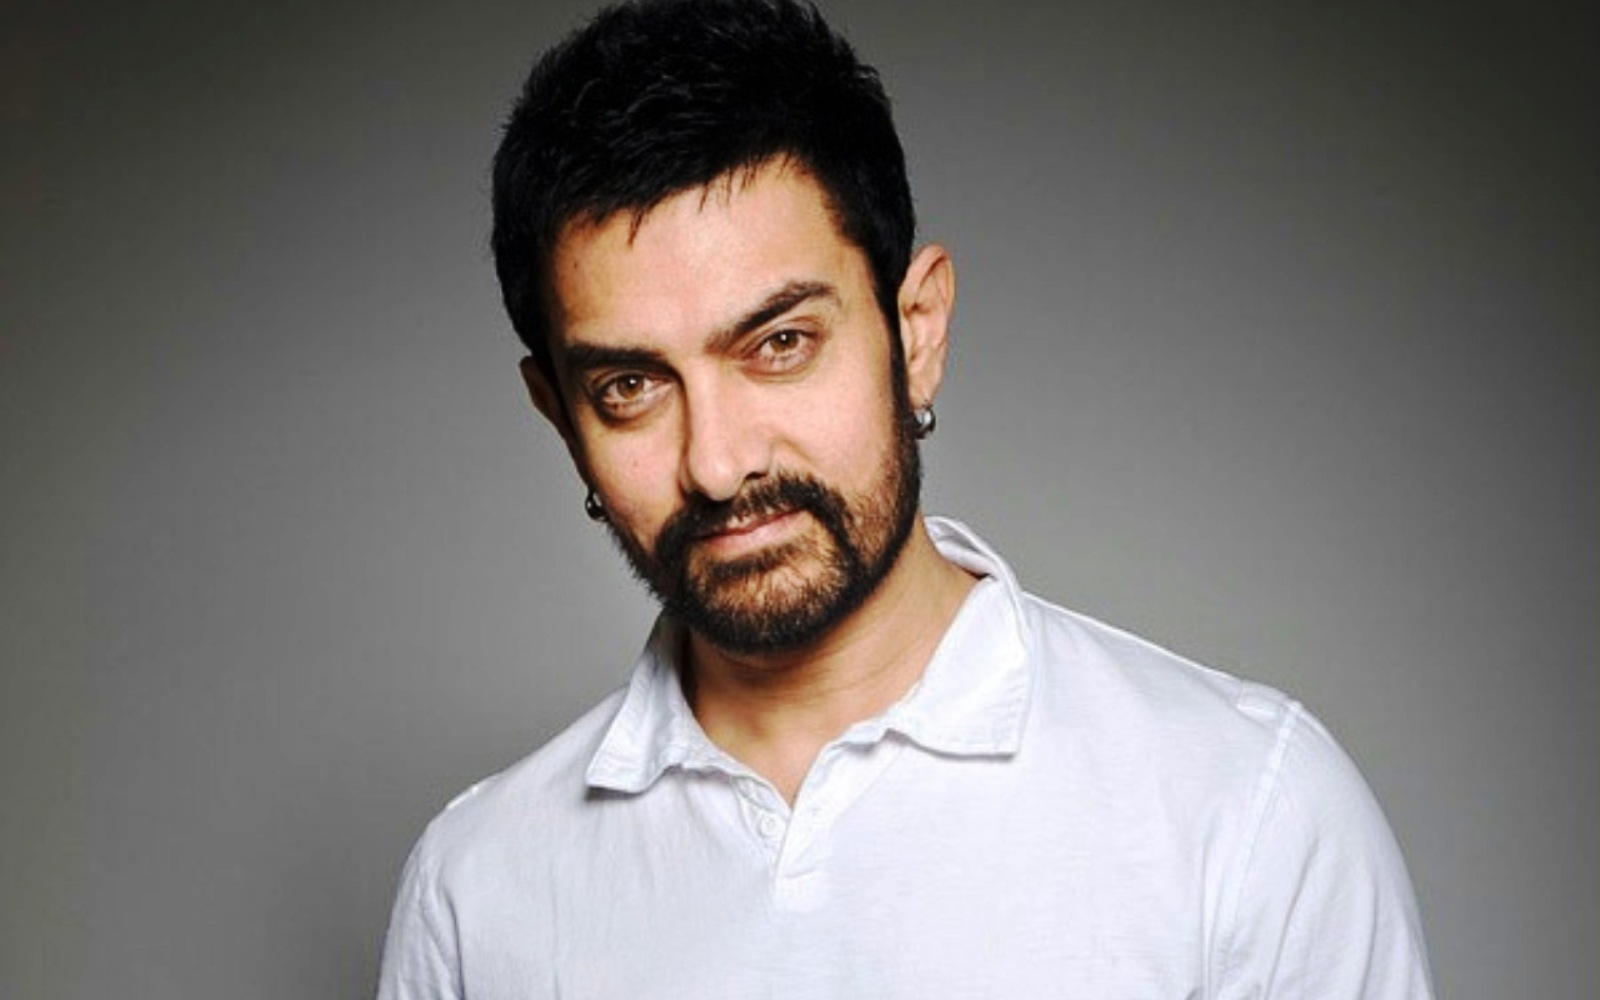 Aamir Khan with a Beard